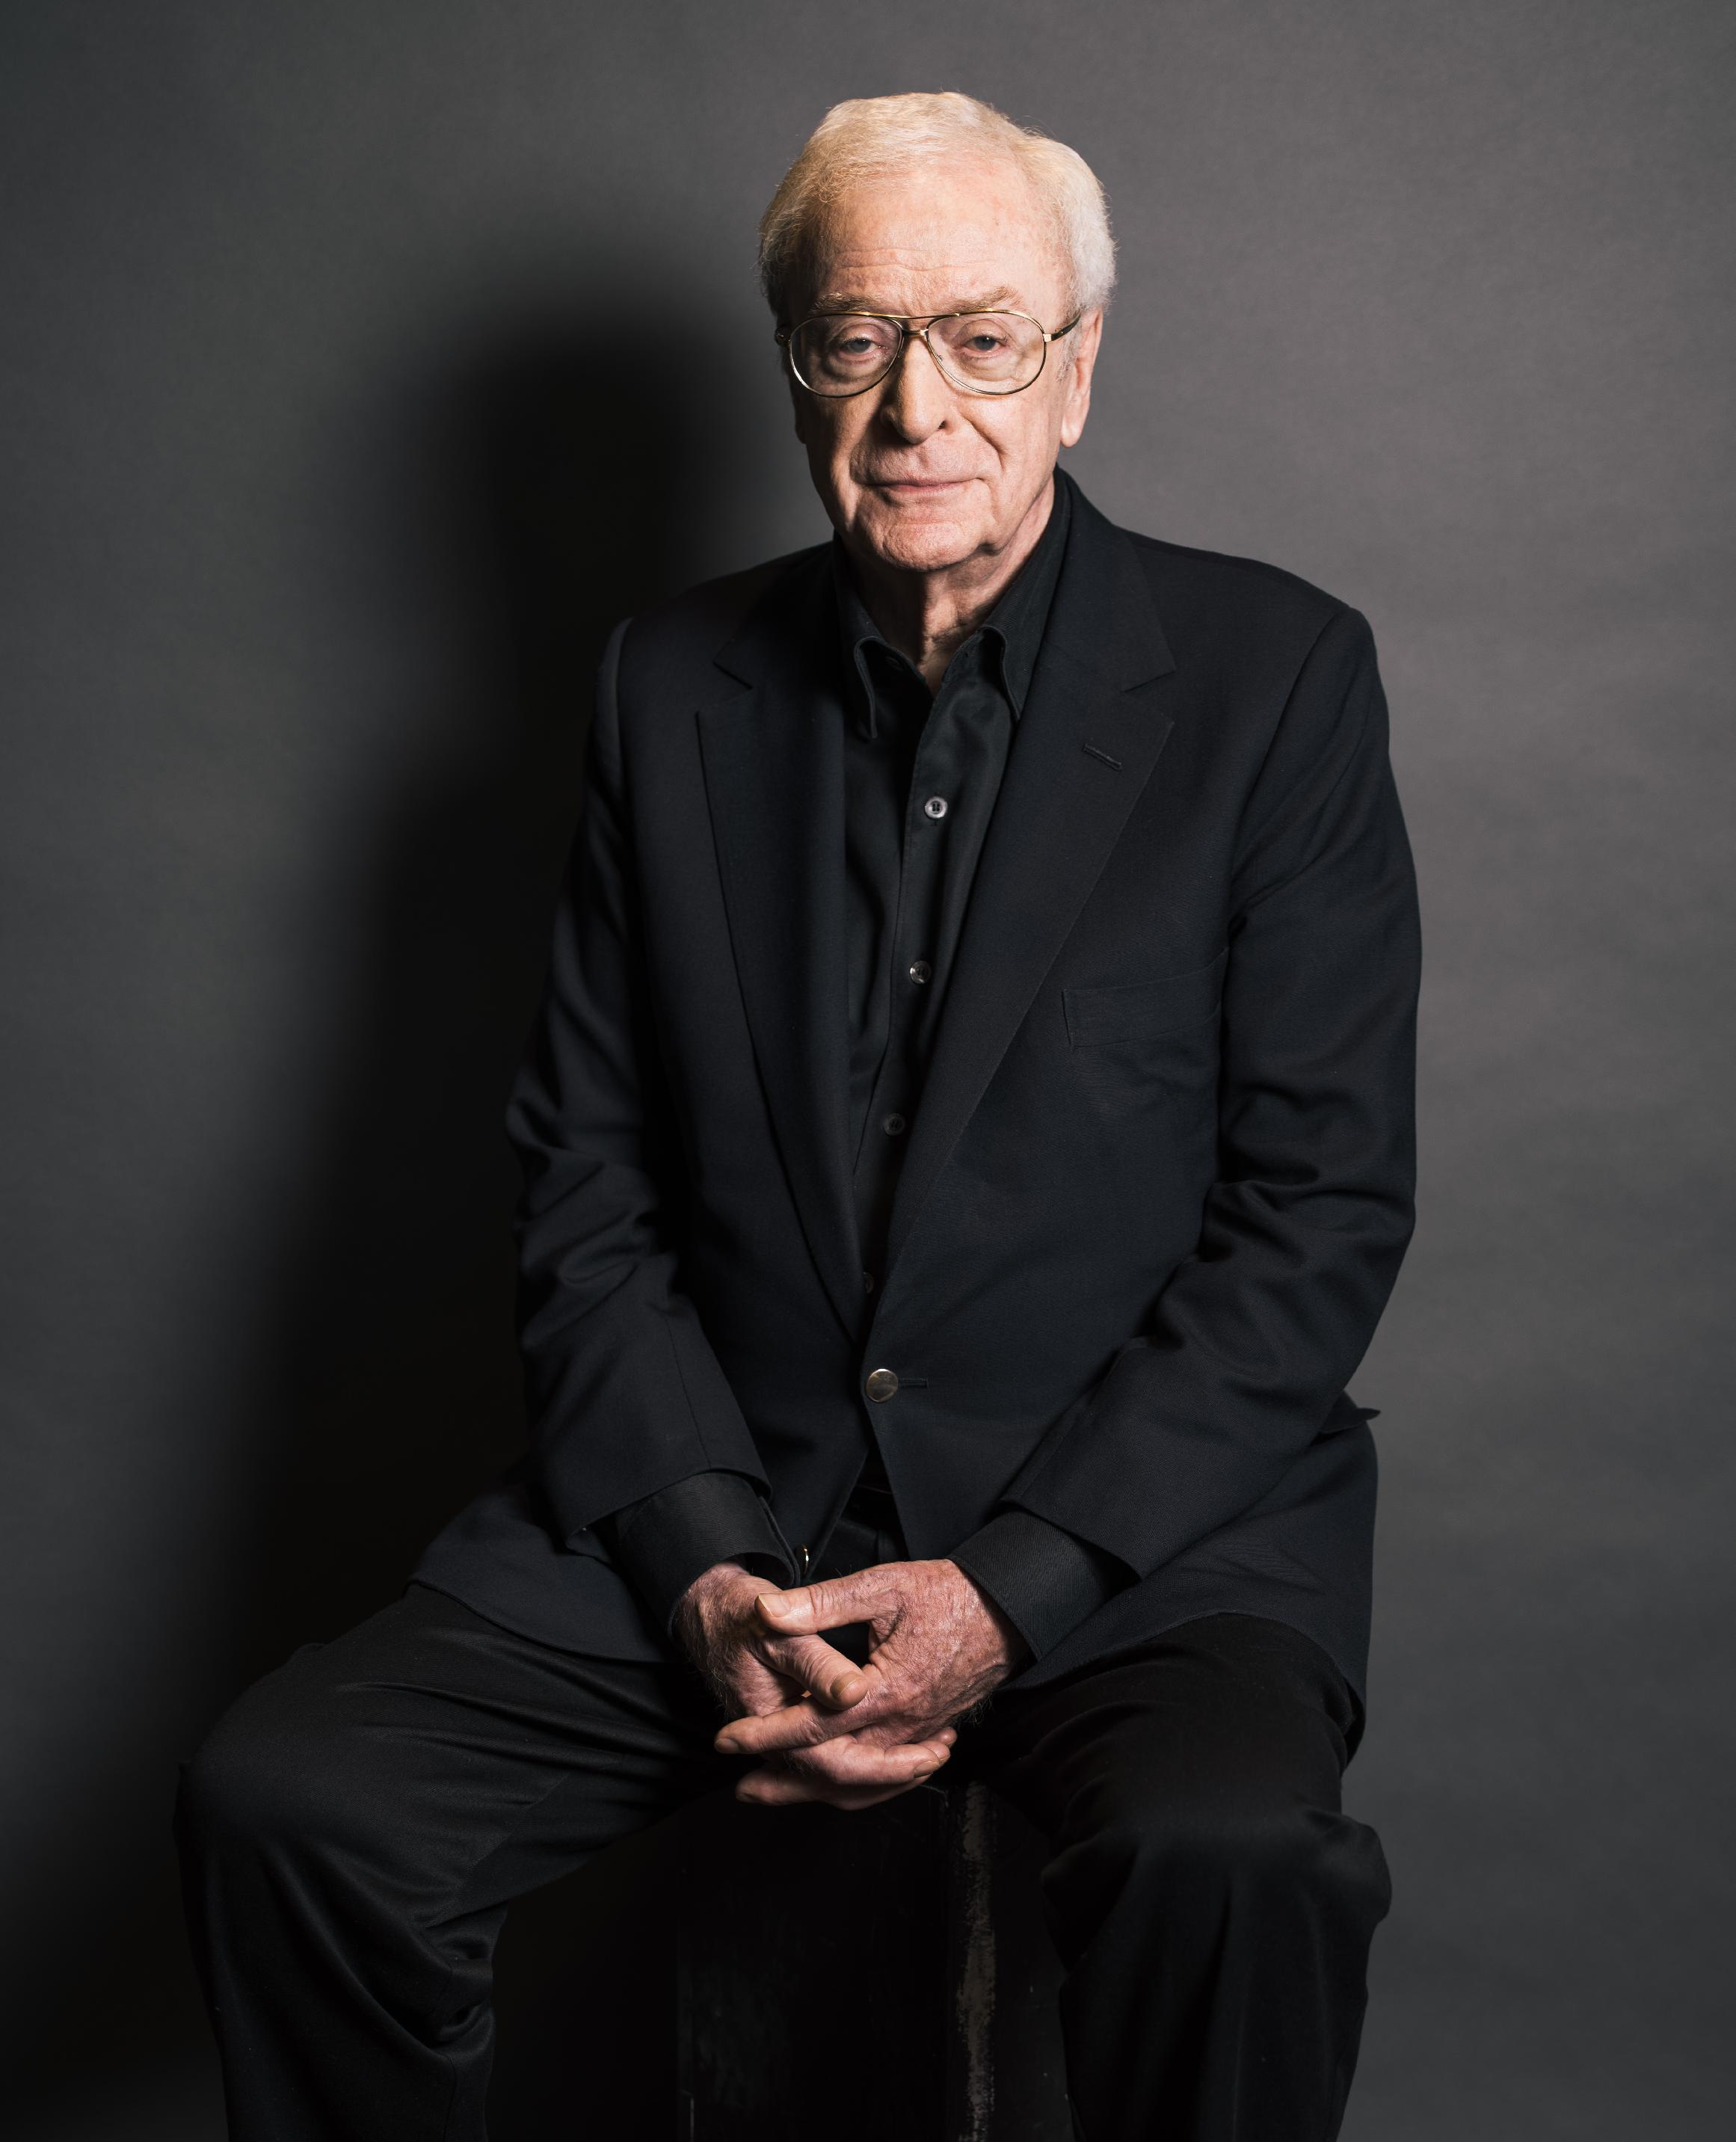 Michael Caine reflects on 'Youth' and old age